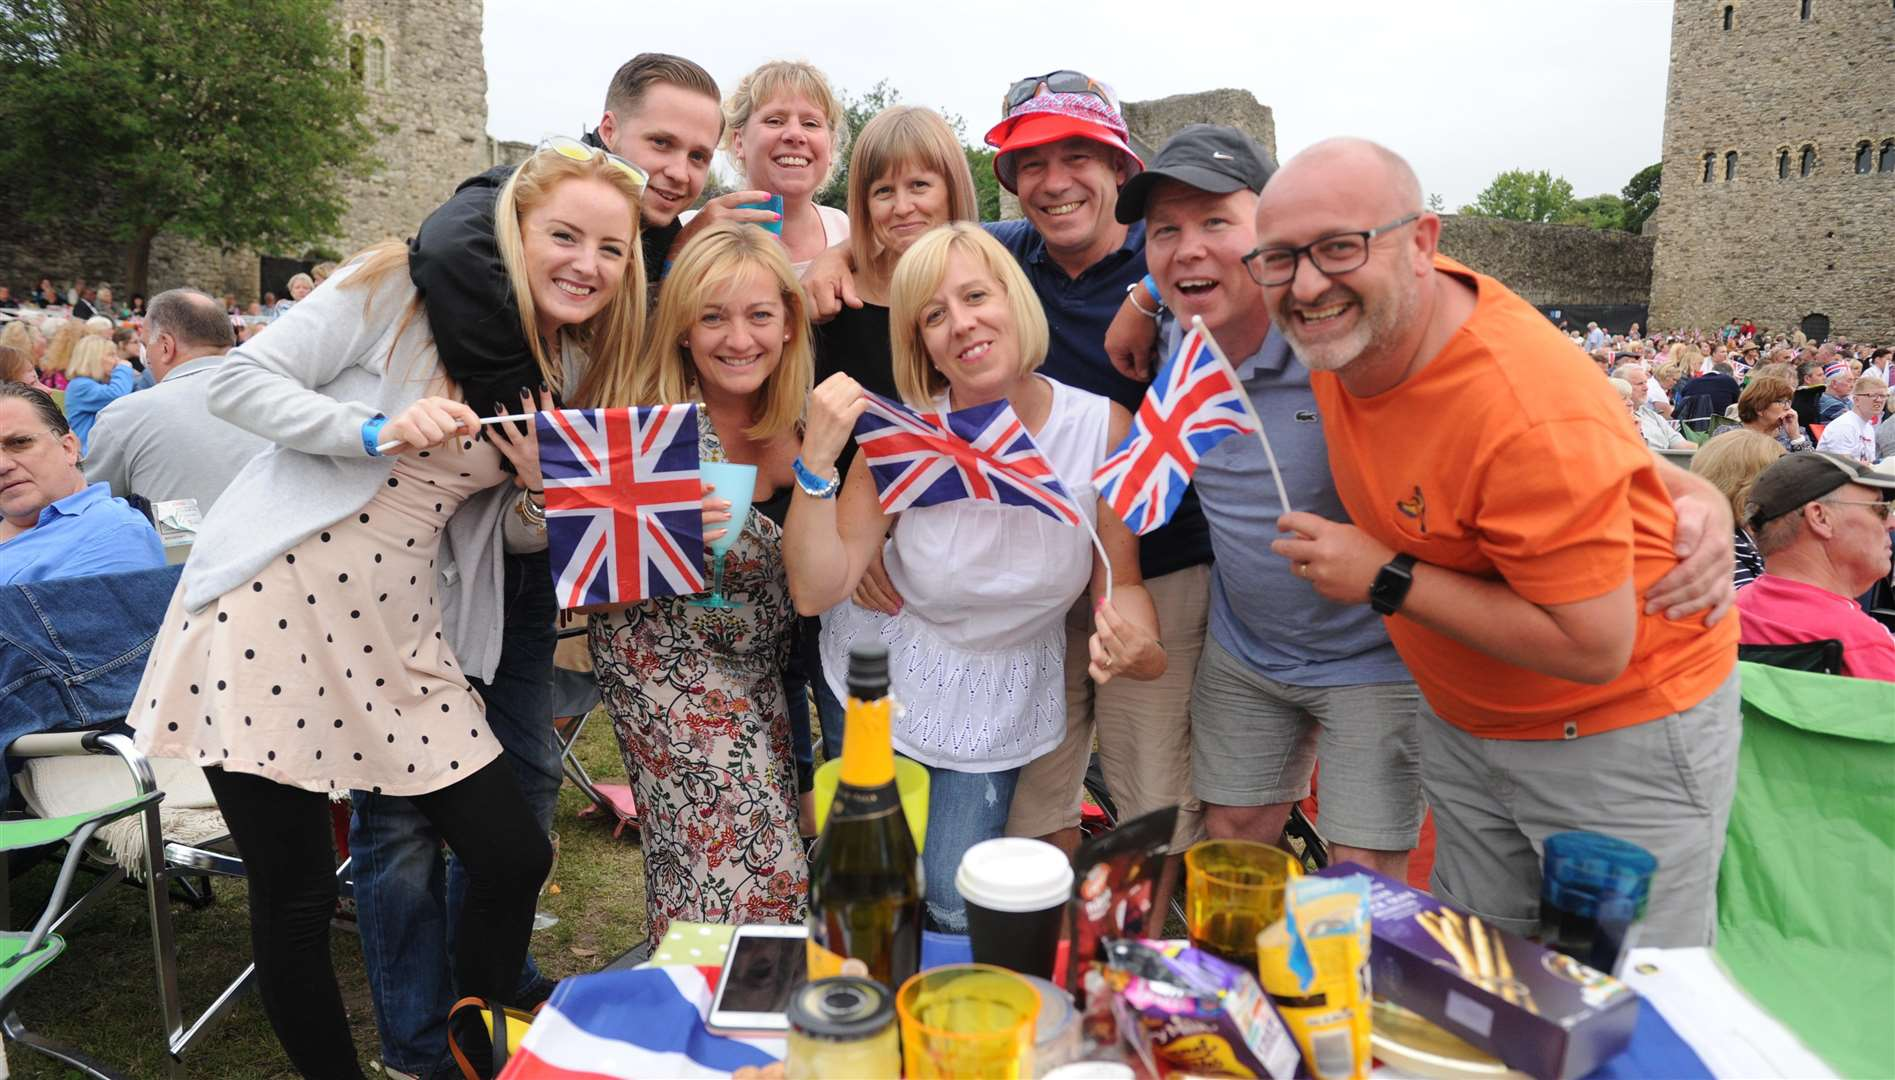 The Castle Concerts Proms encourage plenty of flag waving Picture: Steve Crispe